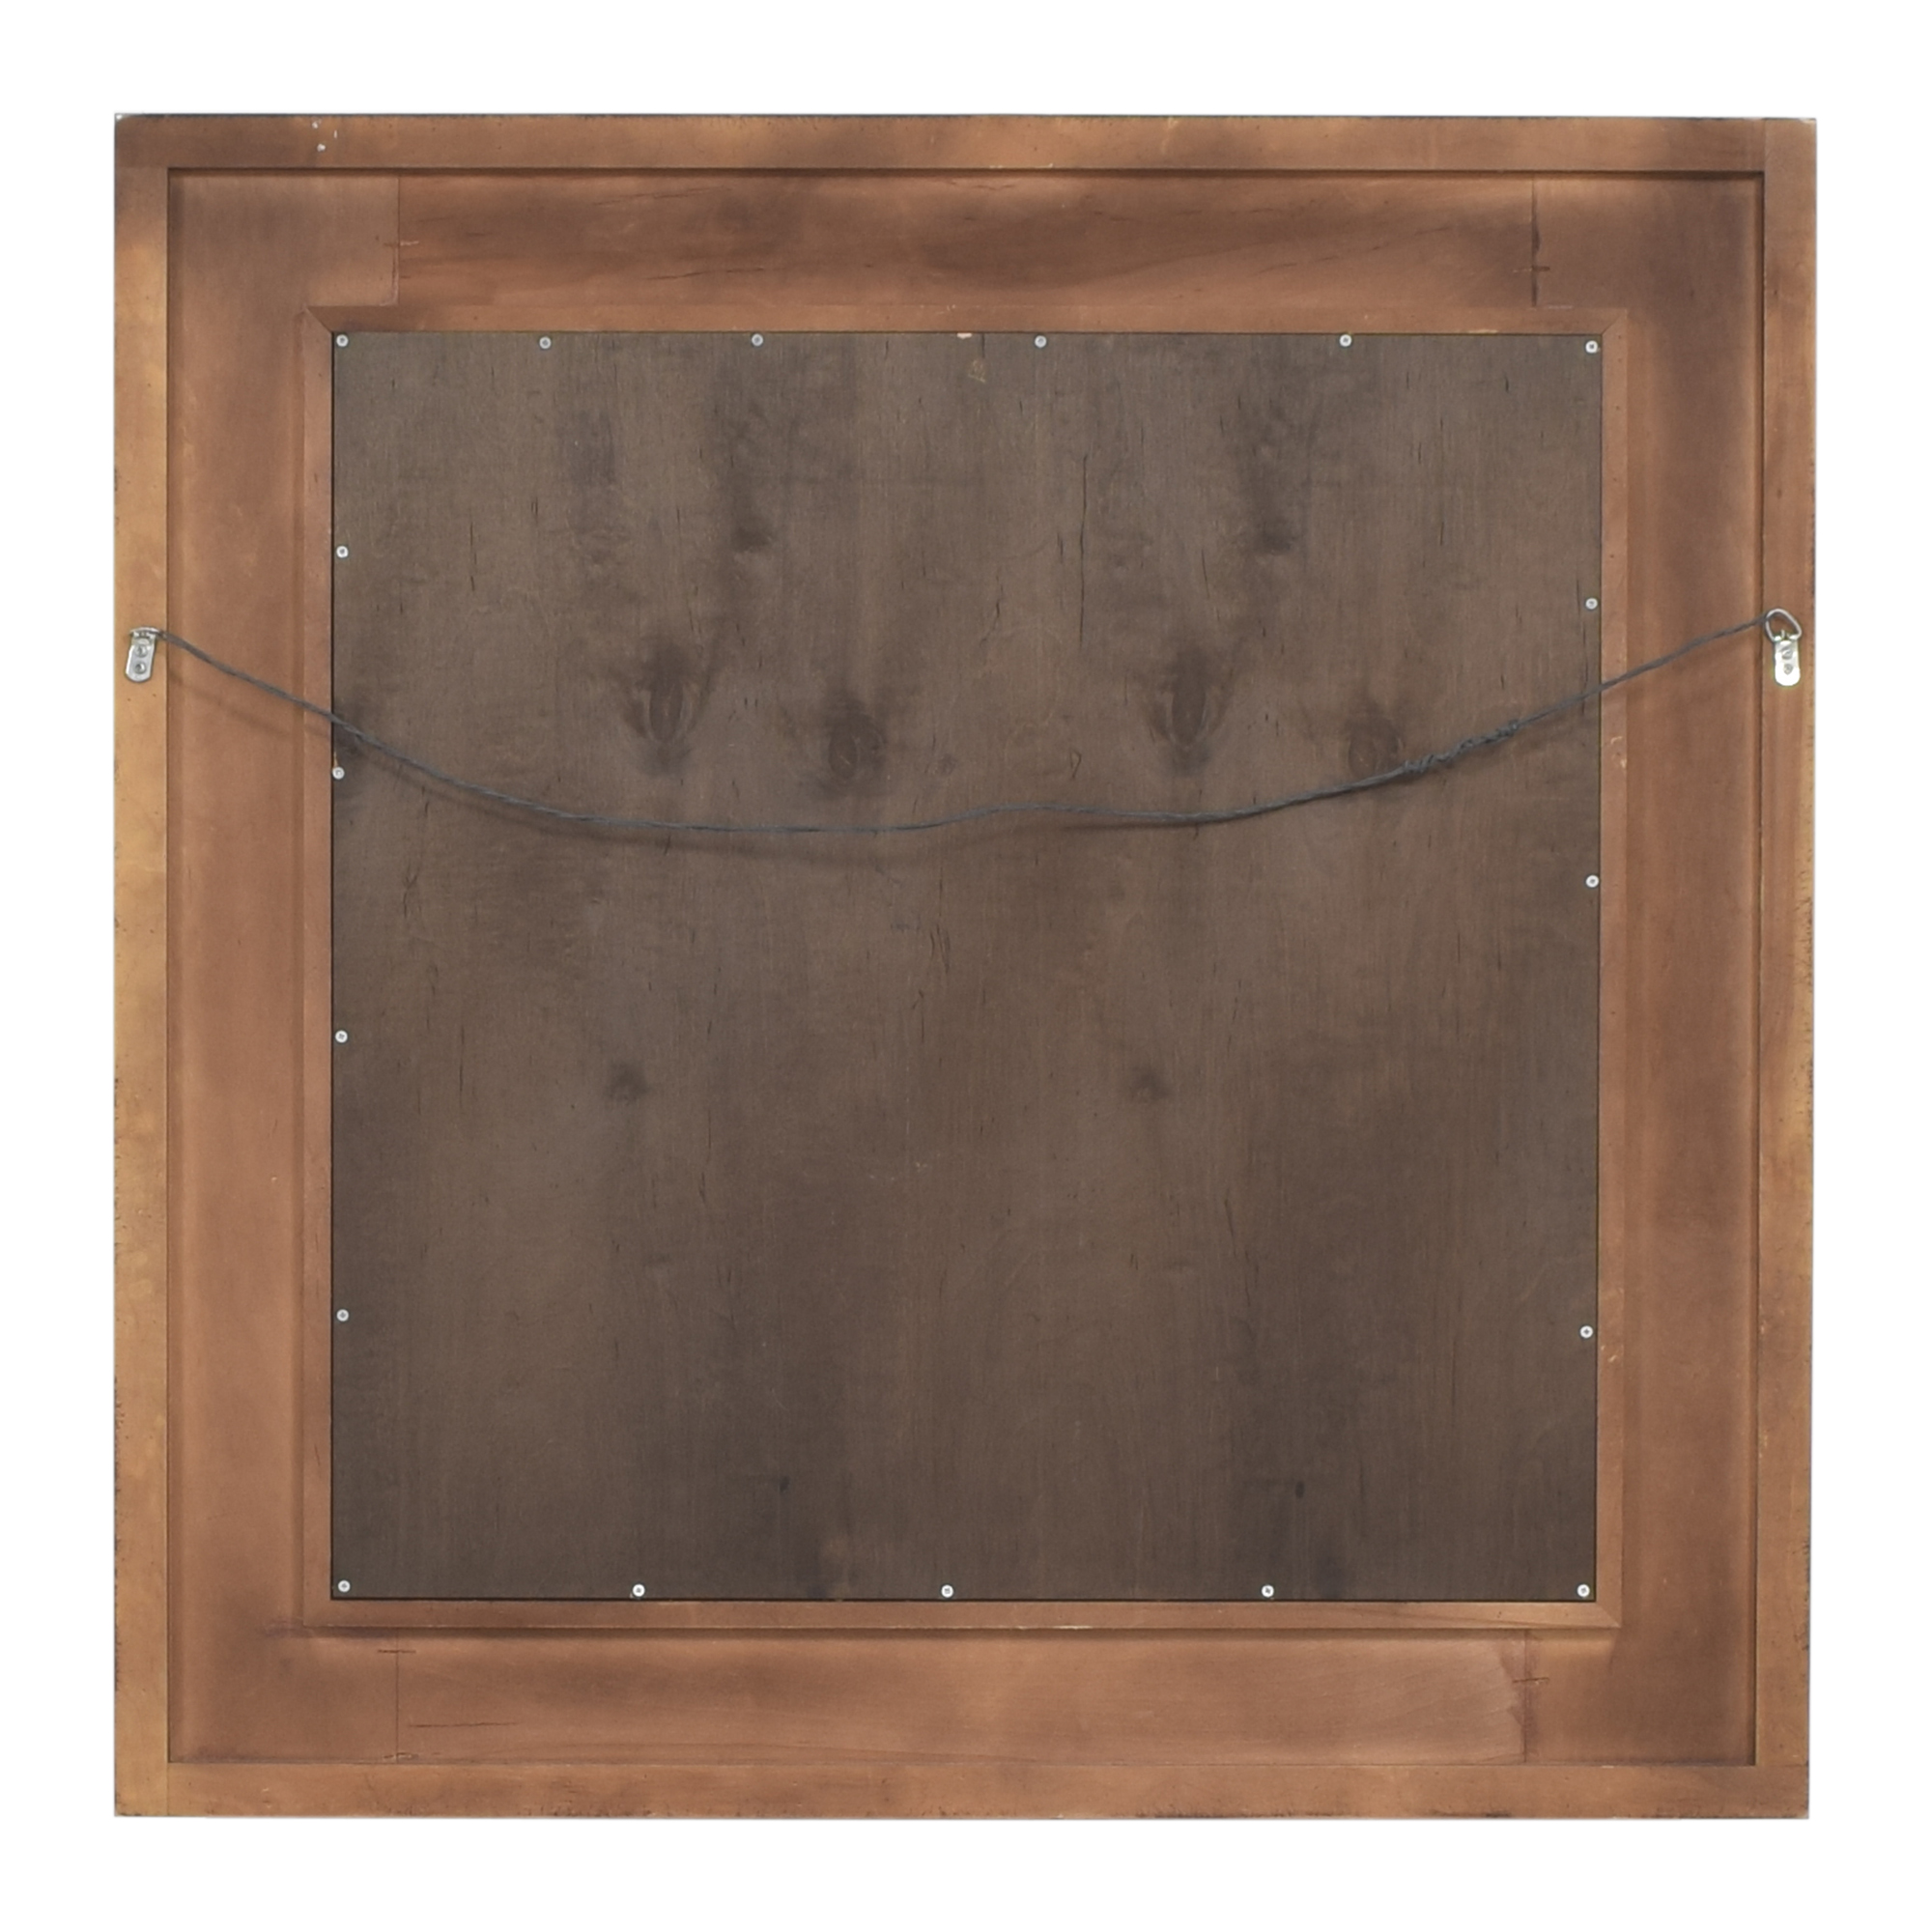 Square Framed Wall Mirror dimensions